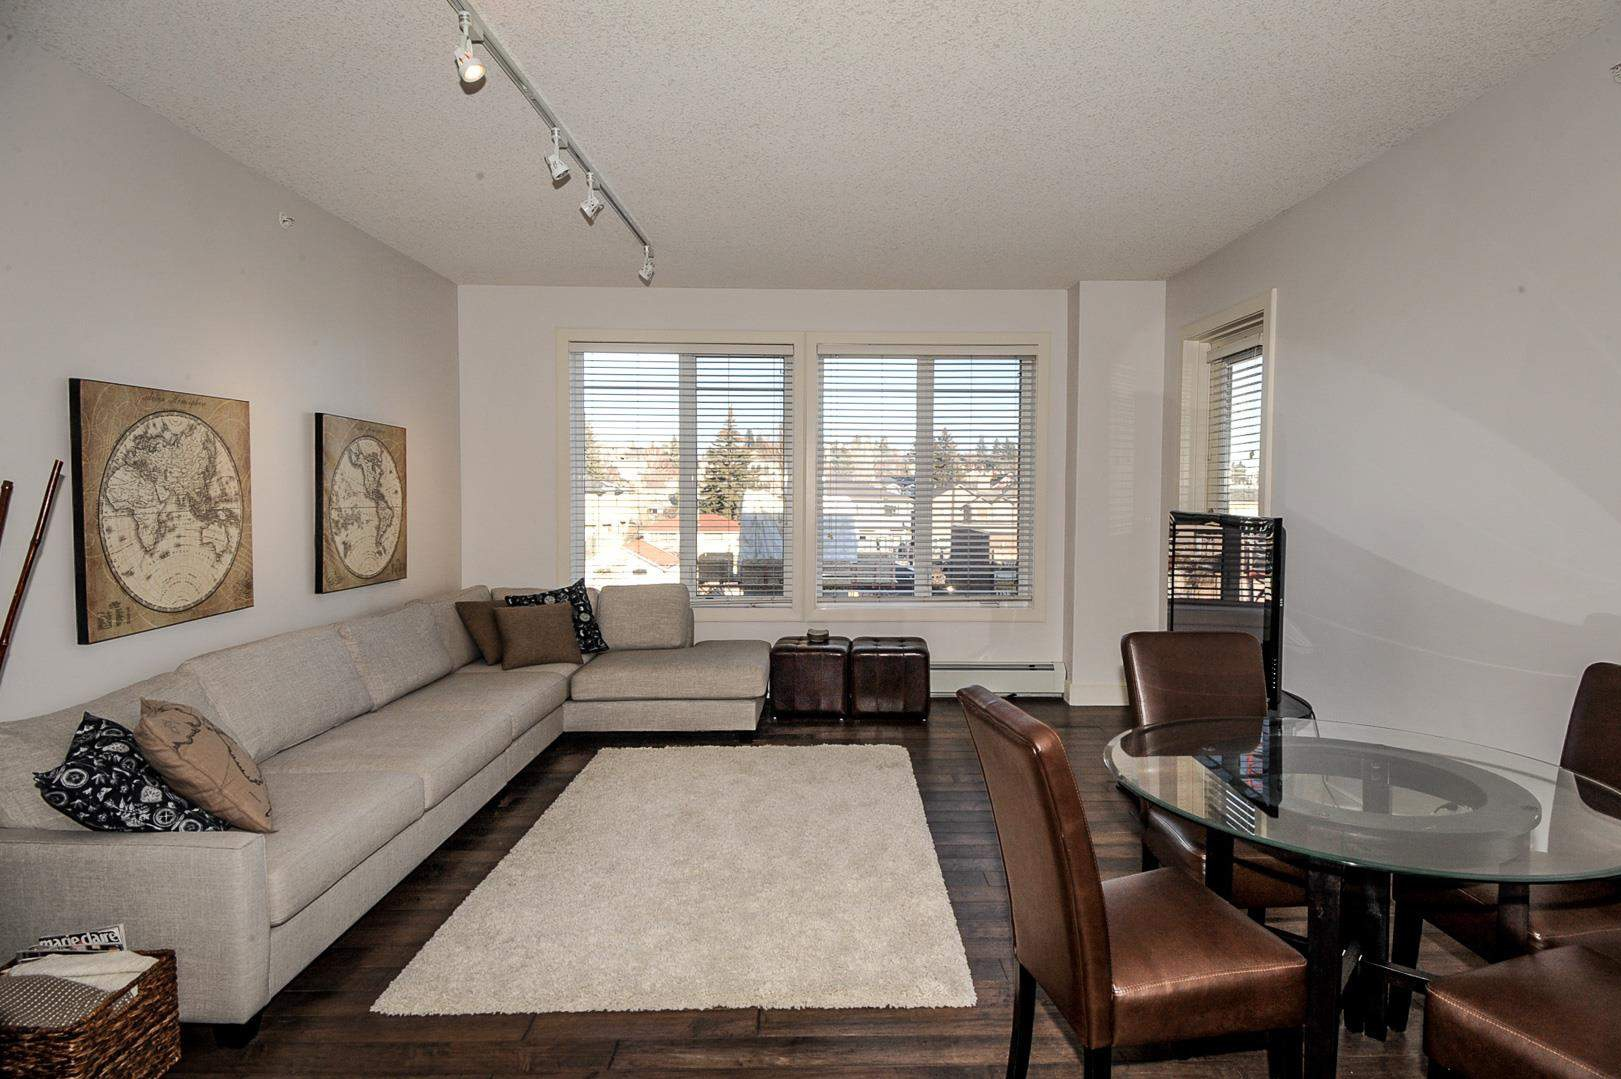 308 3410 20 Street SW in Calgary, AB is Now Available